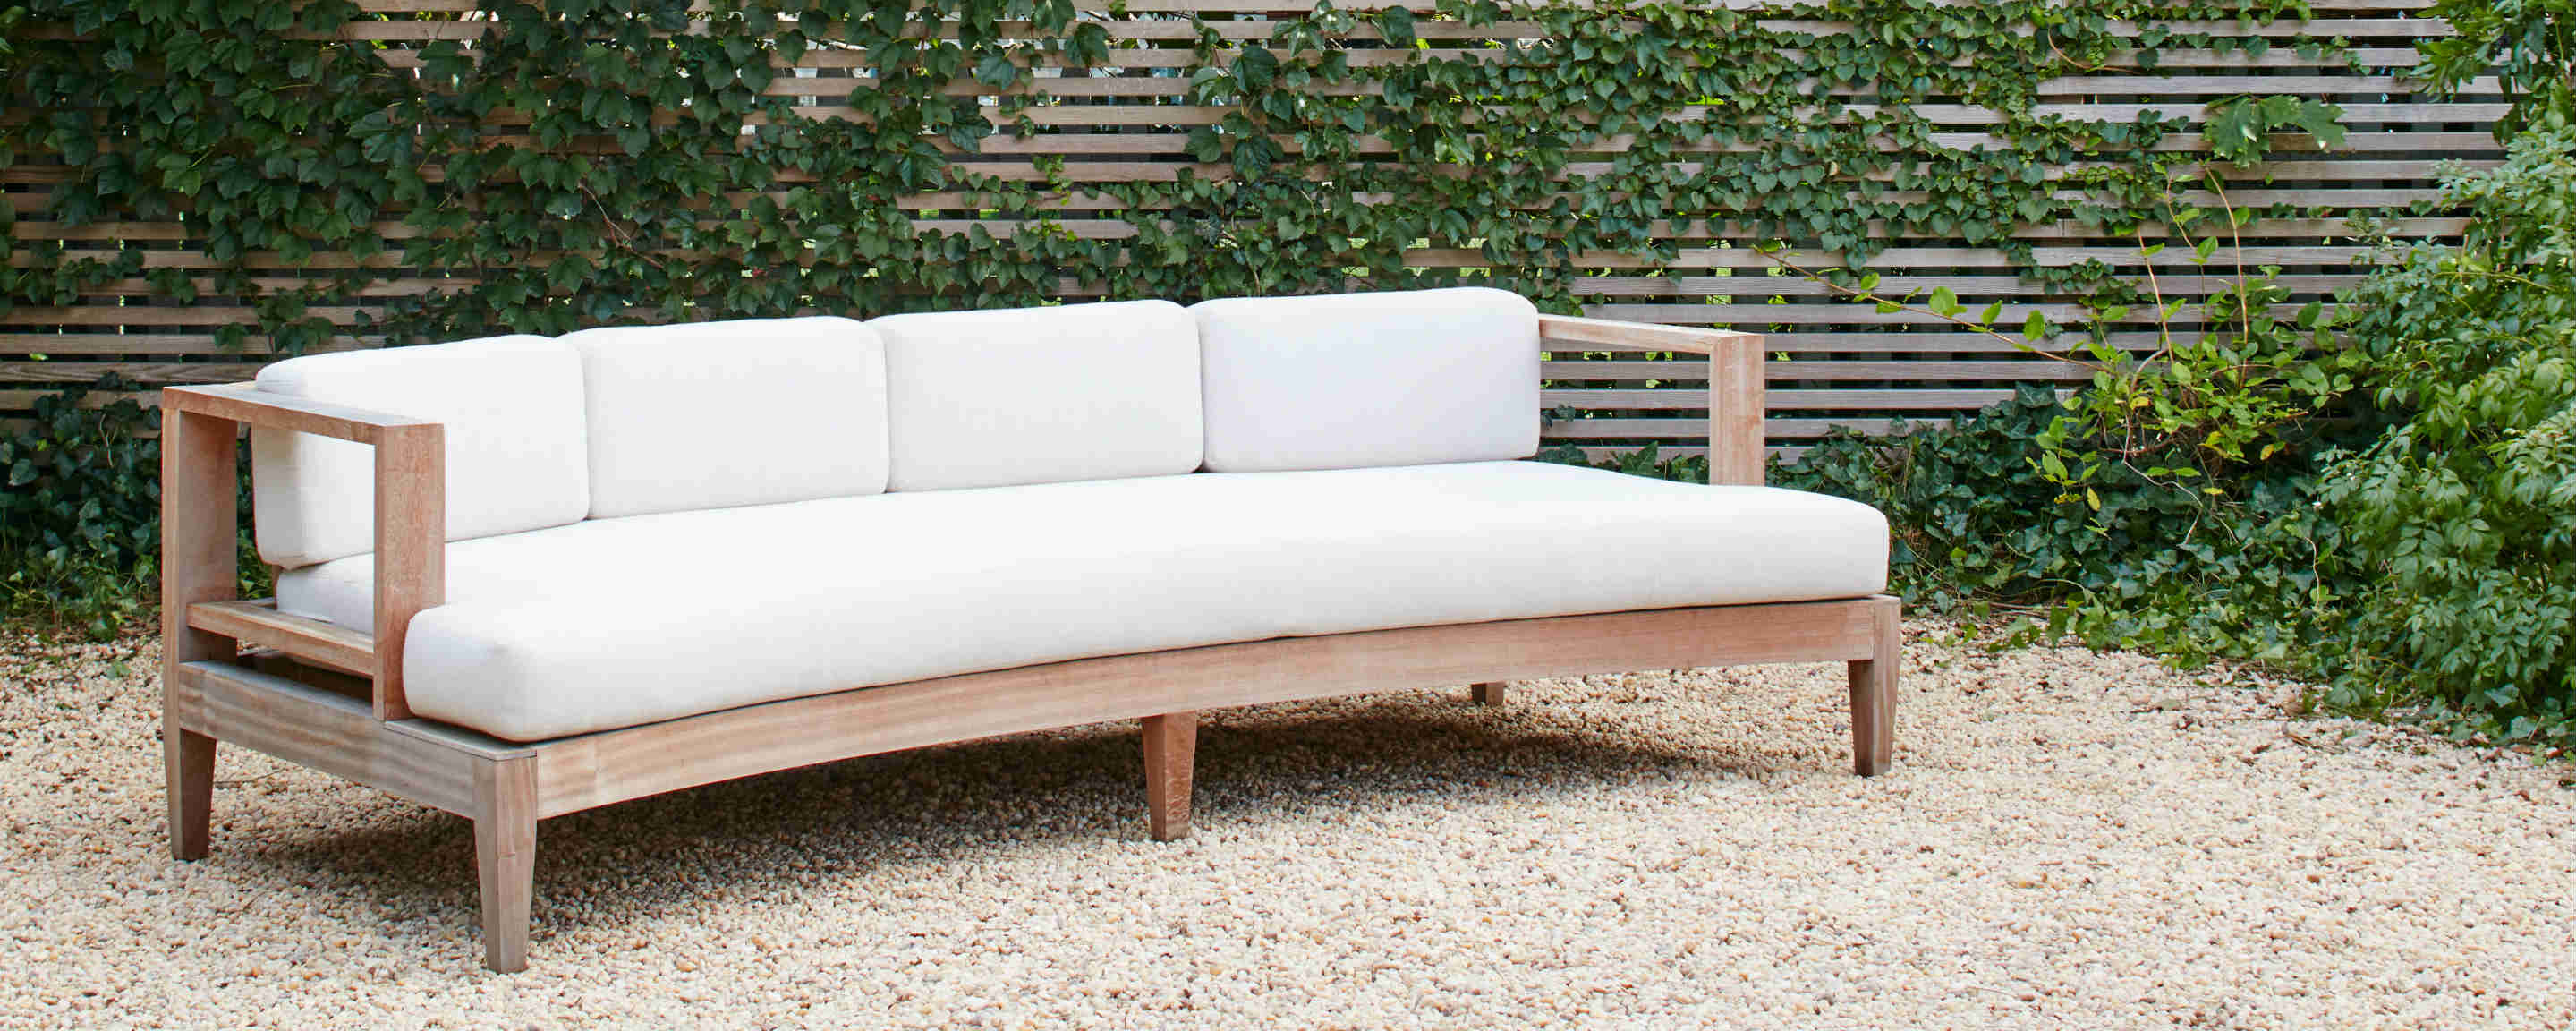 Curved Sofa Sapele Wood Outdoor Curved Sofa Homenature